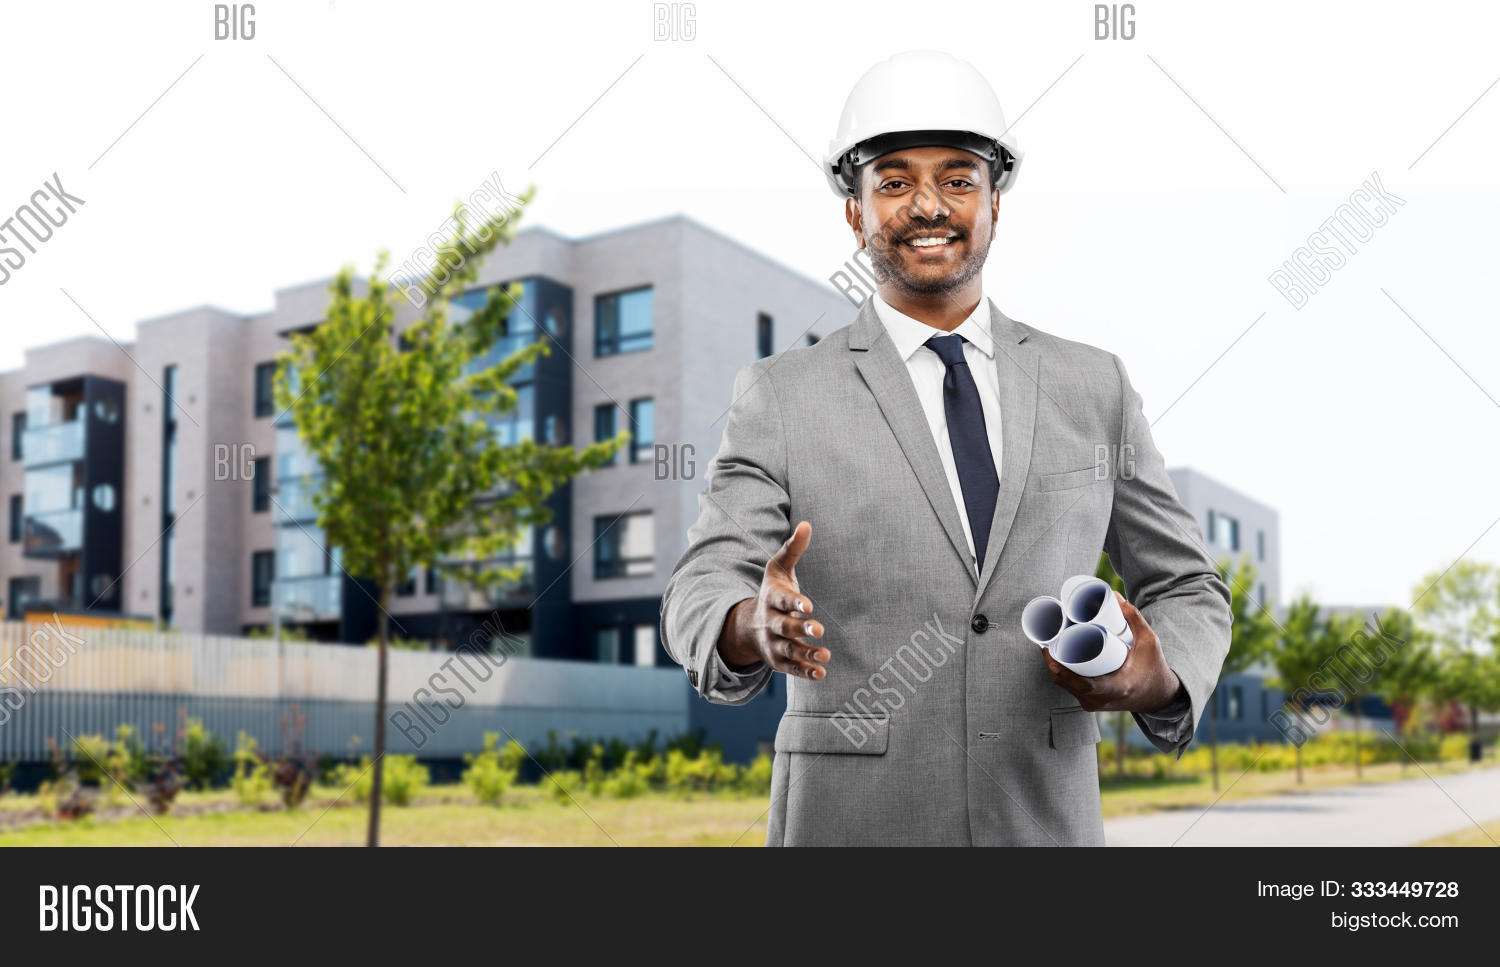 accommodation,adult,agreement,architect,architecture,area,background,blueprint,building,business,businessman,cheerful,city,concept,construction,cooperation,corporate,deal,developer,district,entrepreneur,gesture,greeting,hand,handshake,happy,hardhat,helmet,home,house,housing,indian,living,male,man,mortgage,outdoor,partnership,people,person,property,real estate,realty,scroll,smiling,south asian,street,town,urban,young